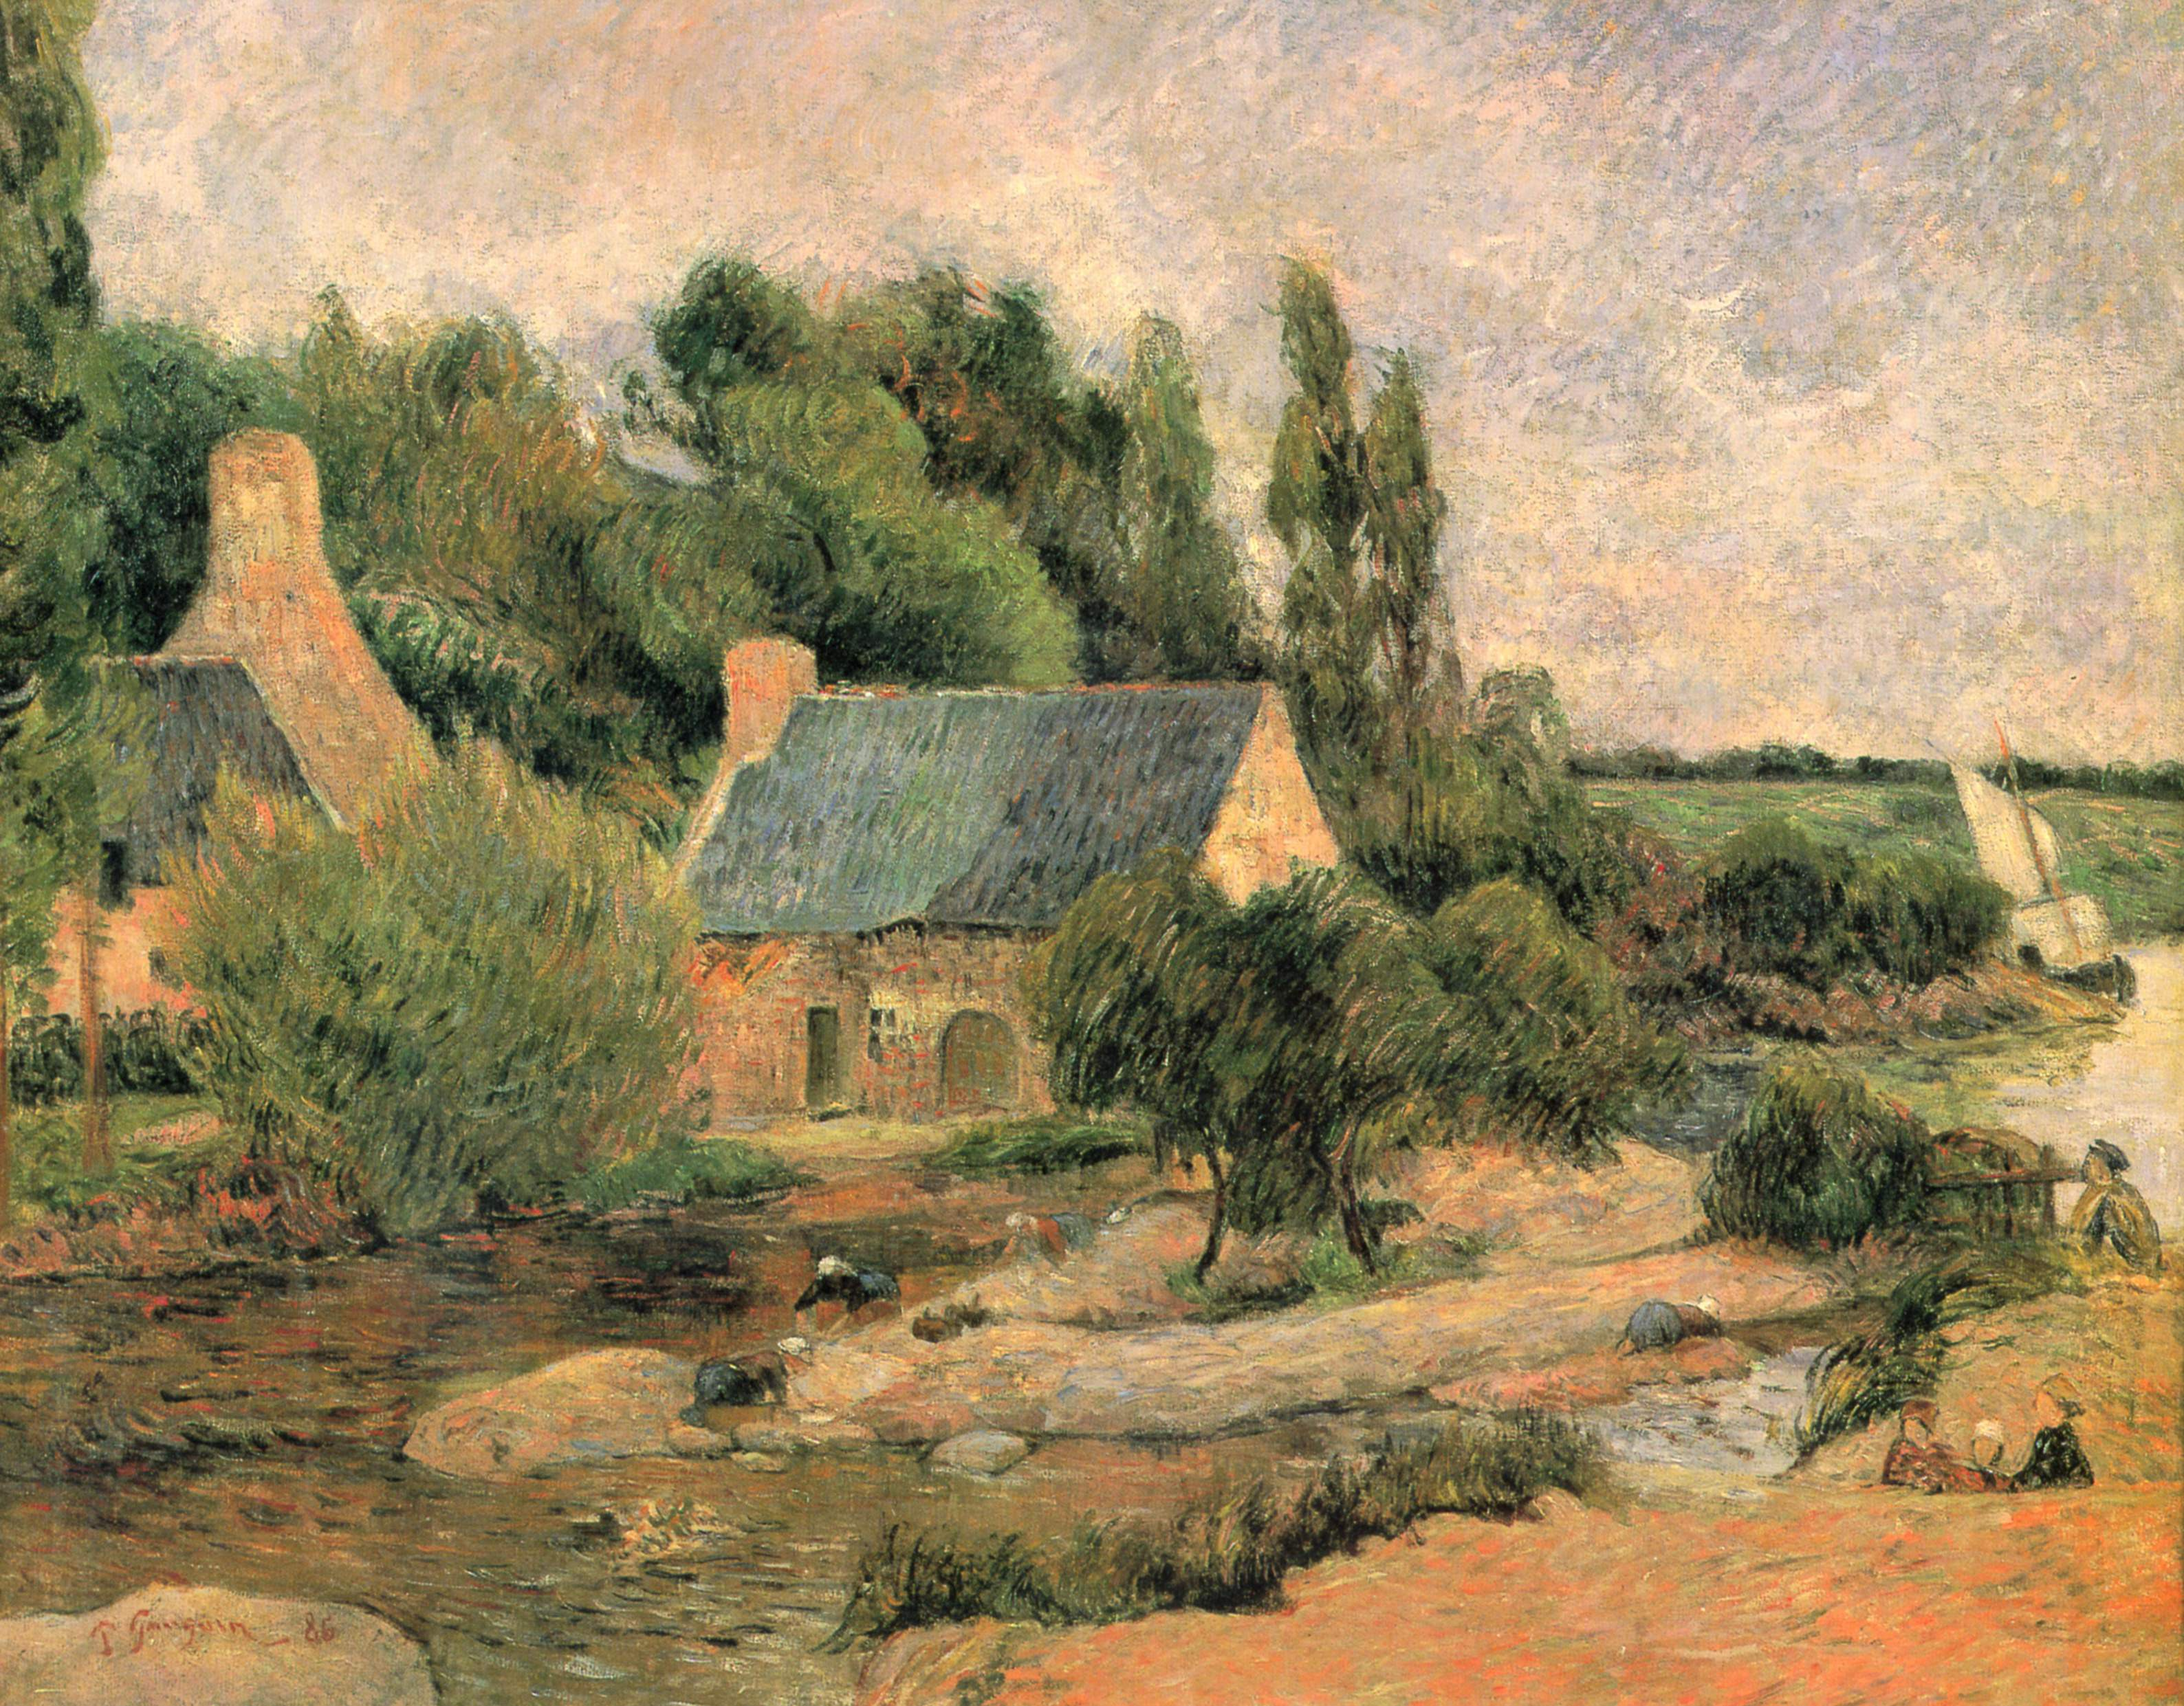 Paul Gauguin's Brittany: Then And Now